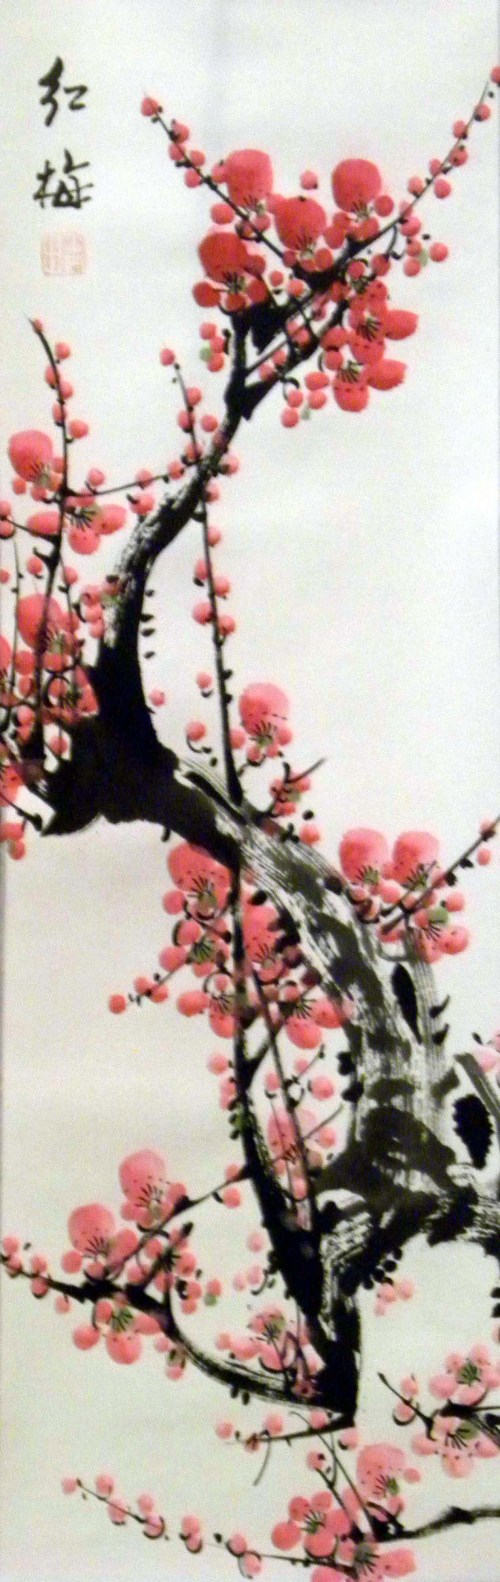 Medium Of Cherry Blossom Art